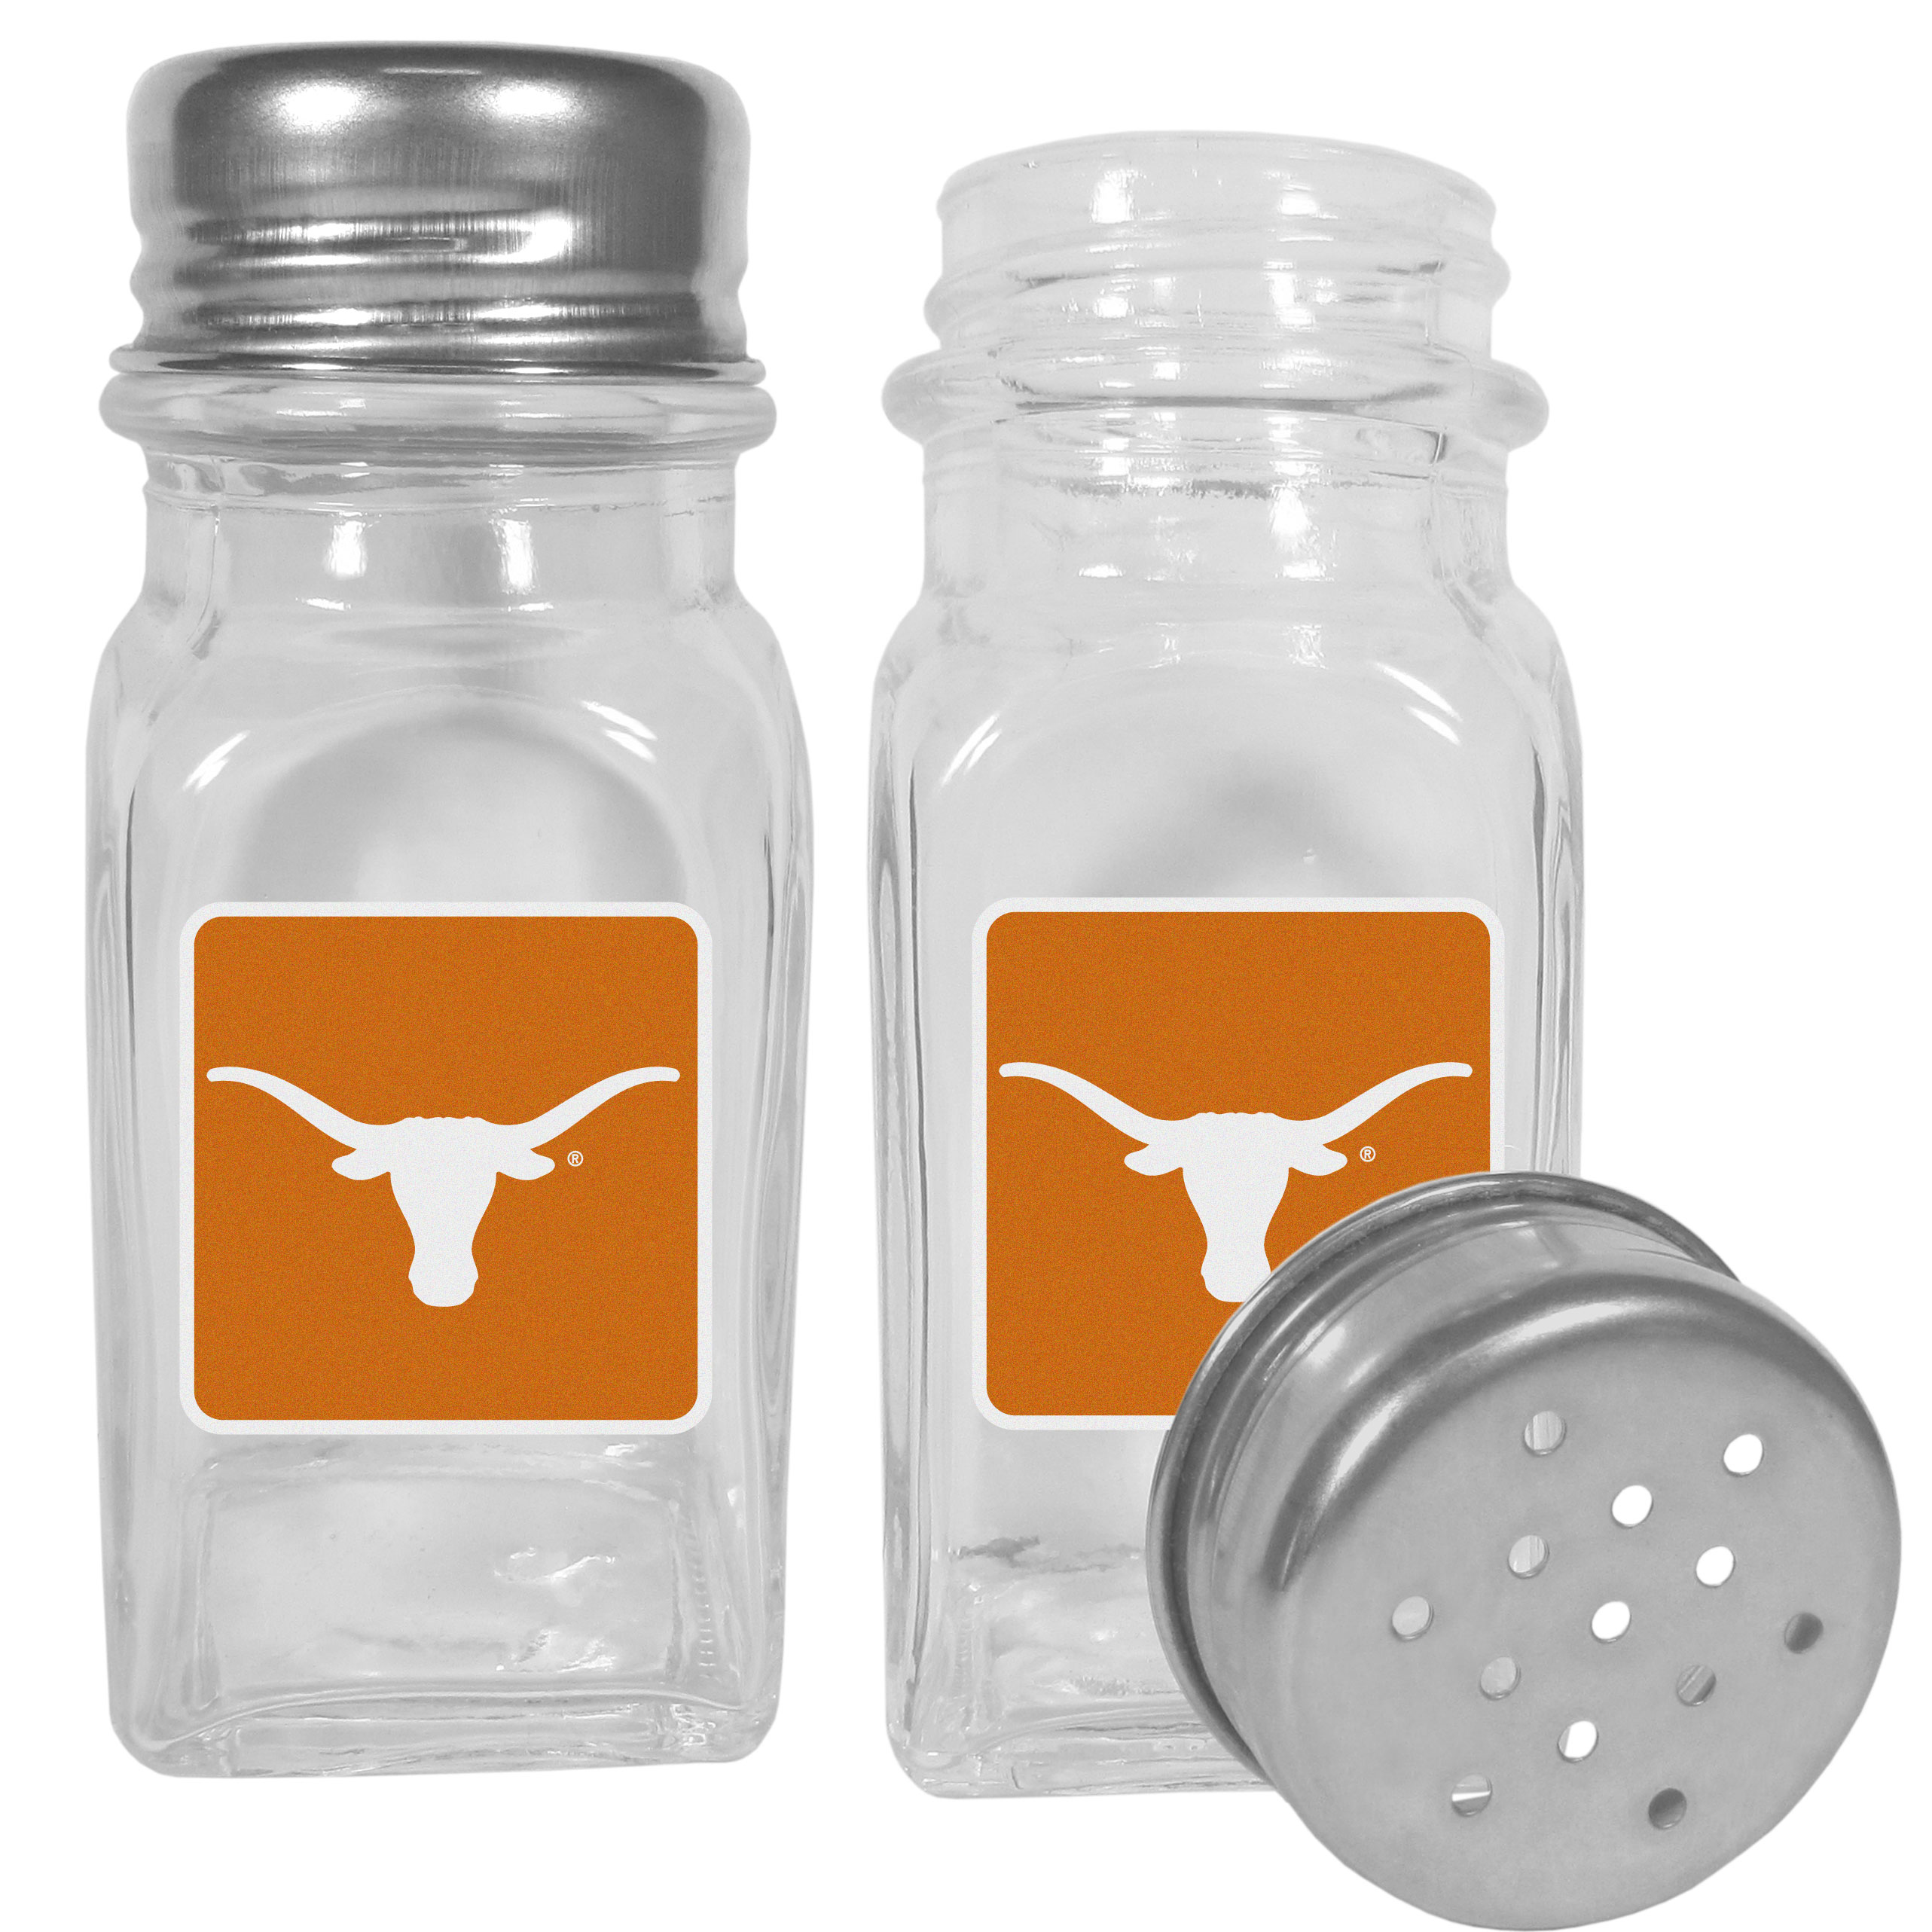 Texas Longhorns Graphics Salt & Pepper Shaker - No tailgate party is complete without your Texas Longhorns salt & pepper shakers featuring bright team logos. The diner replica salt and pepper shakers are glass with screw top lids. These team shakers are a great grill accessory whether you are barbecuing on the patio, picnicing or having a game day party.